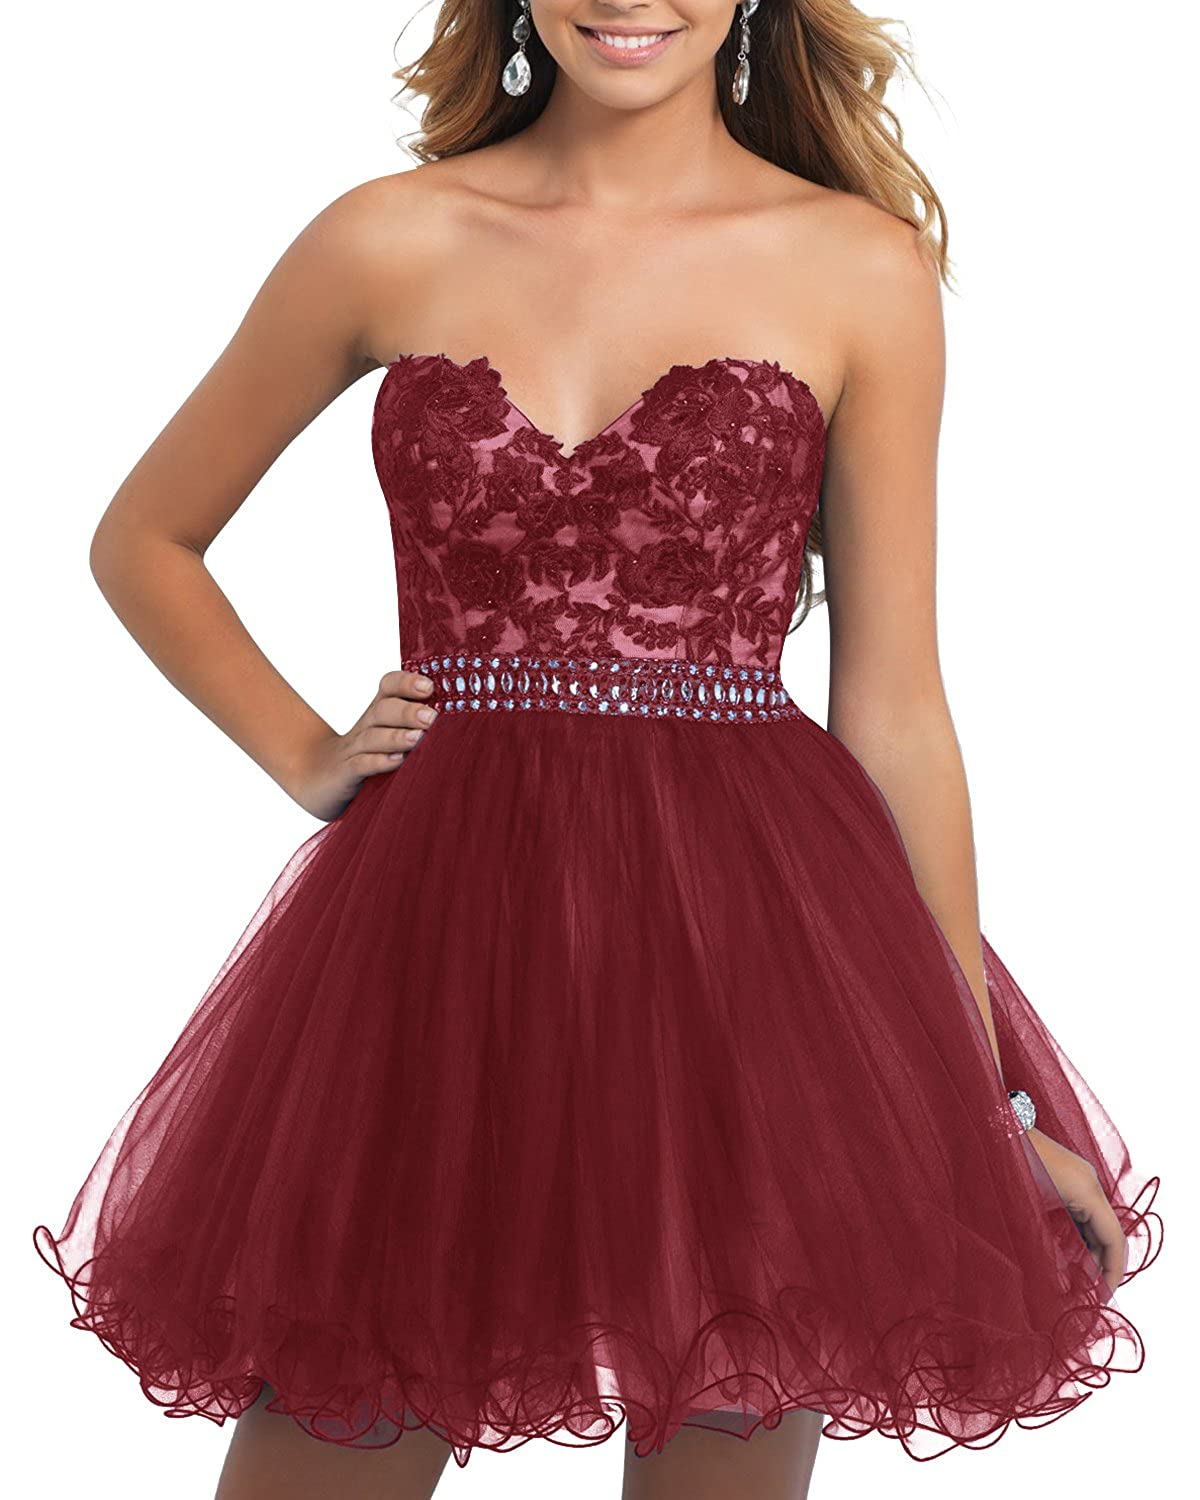 Bridesmay Short Tulle Prom Dress Sweetheart Bridesmaid Party Dress with Beads